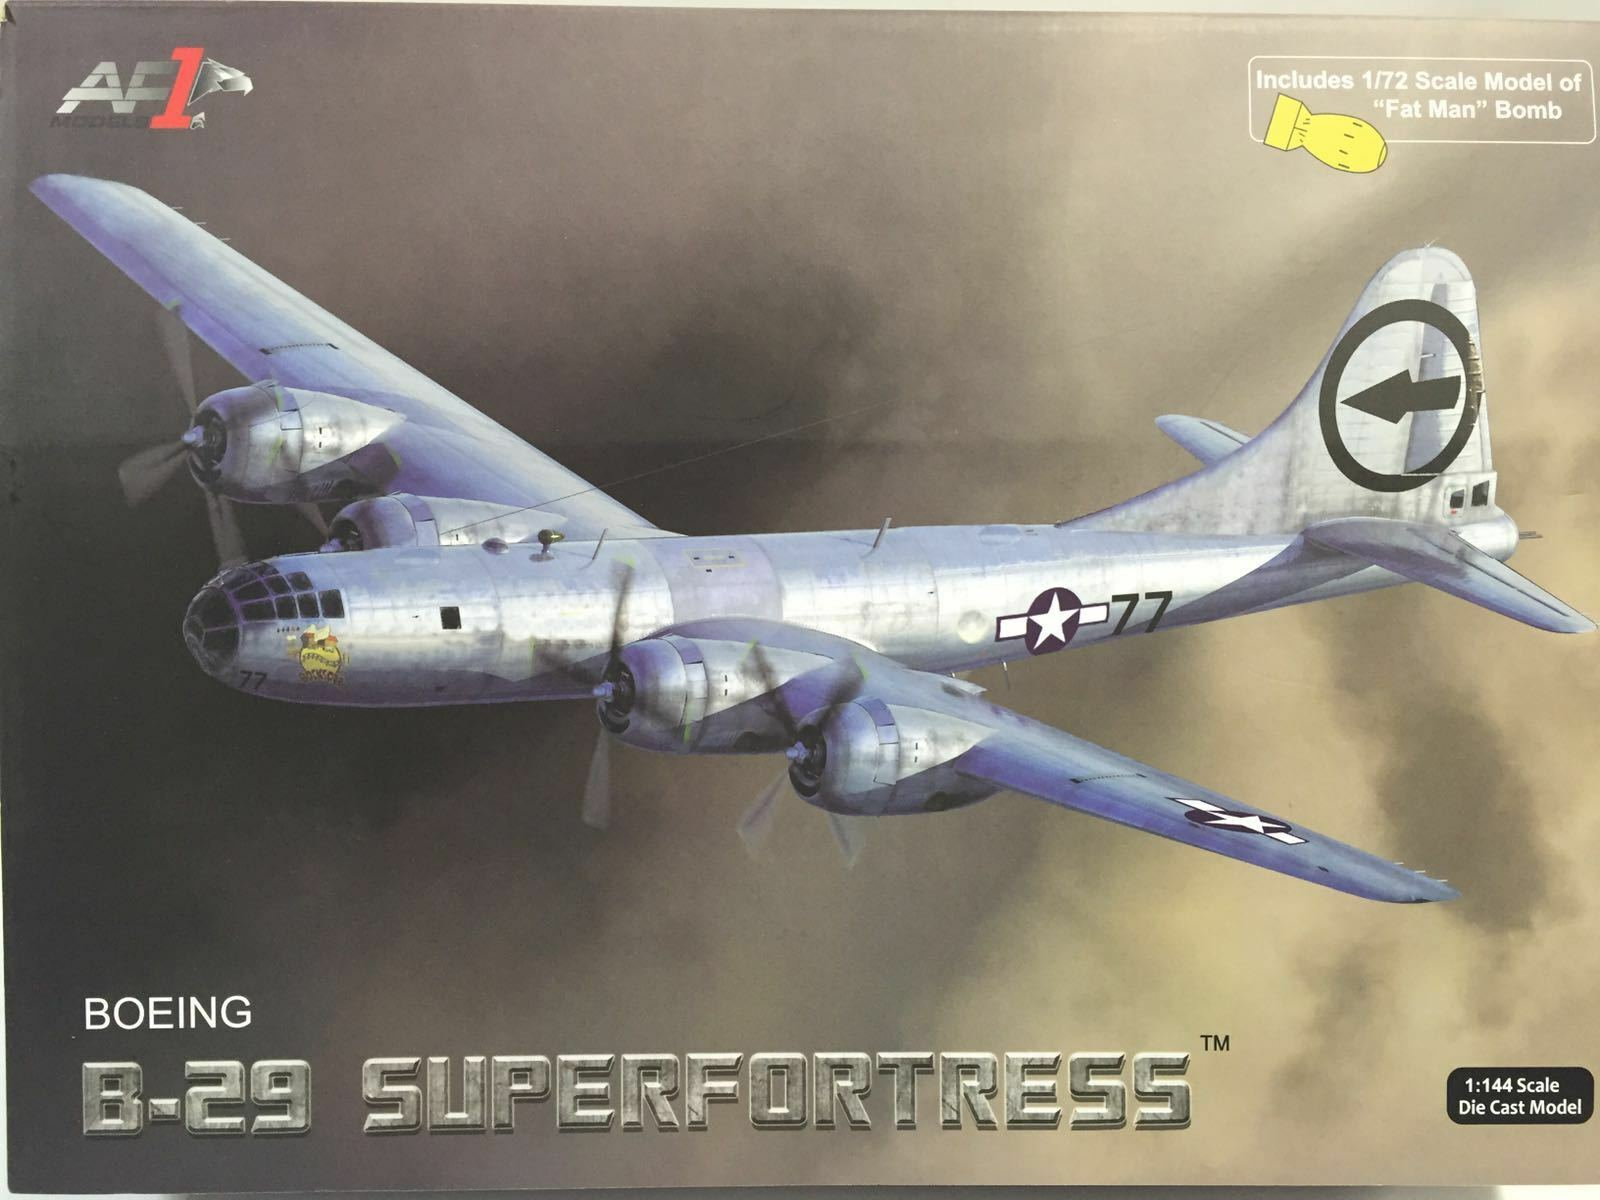 Air force 1 af1-0112c boeing b - 29 superfortress mit bombe - dicke, 1 144